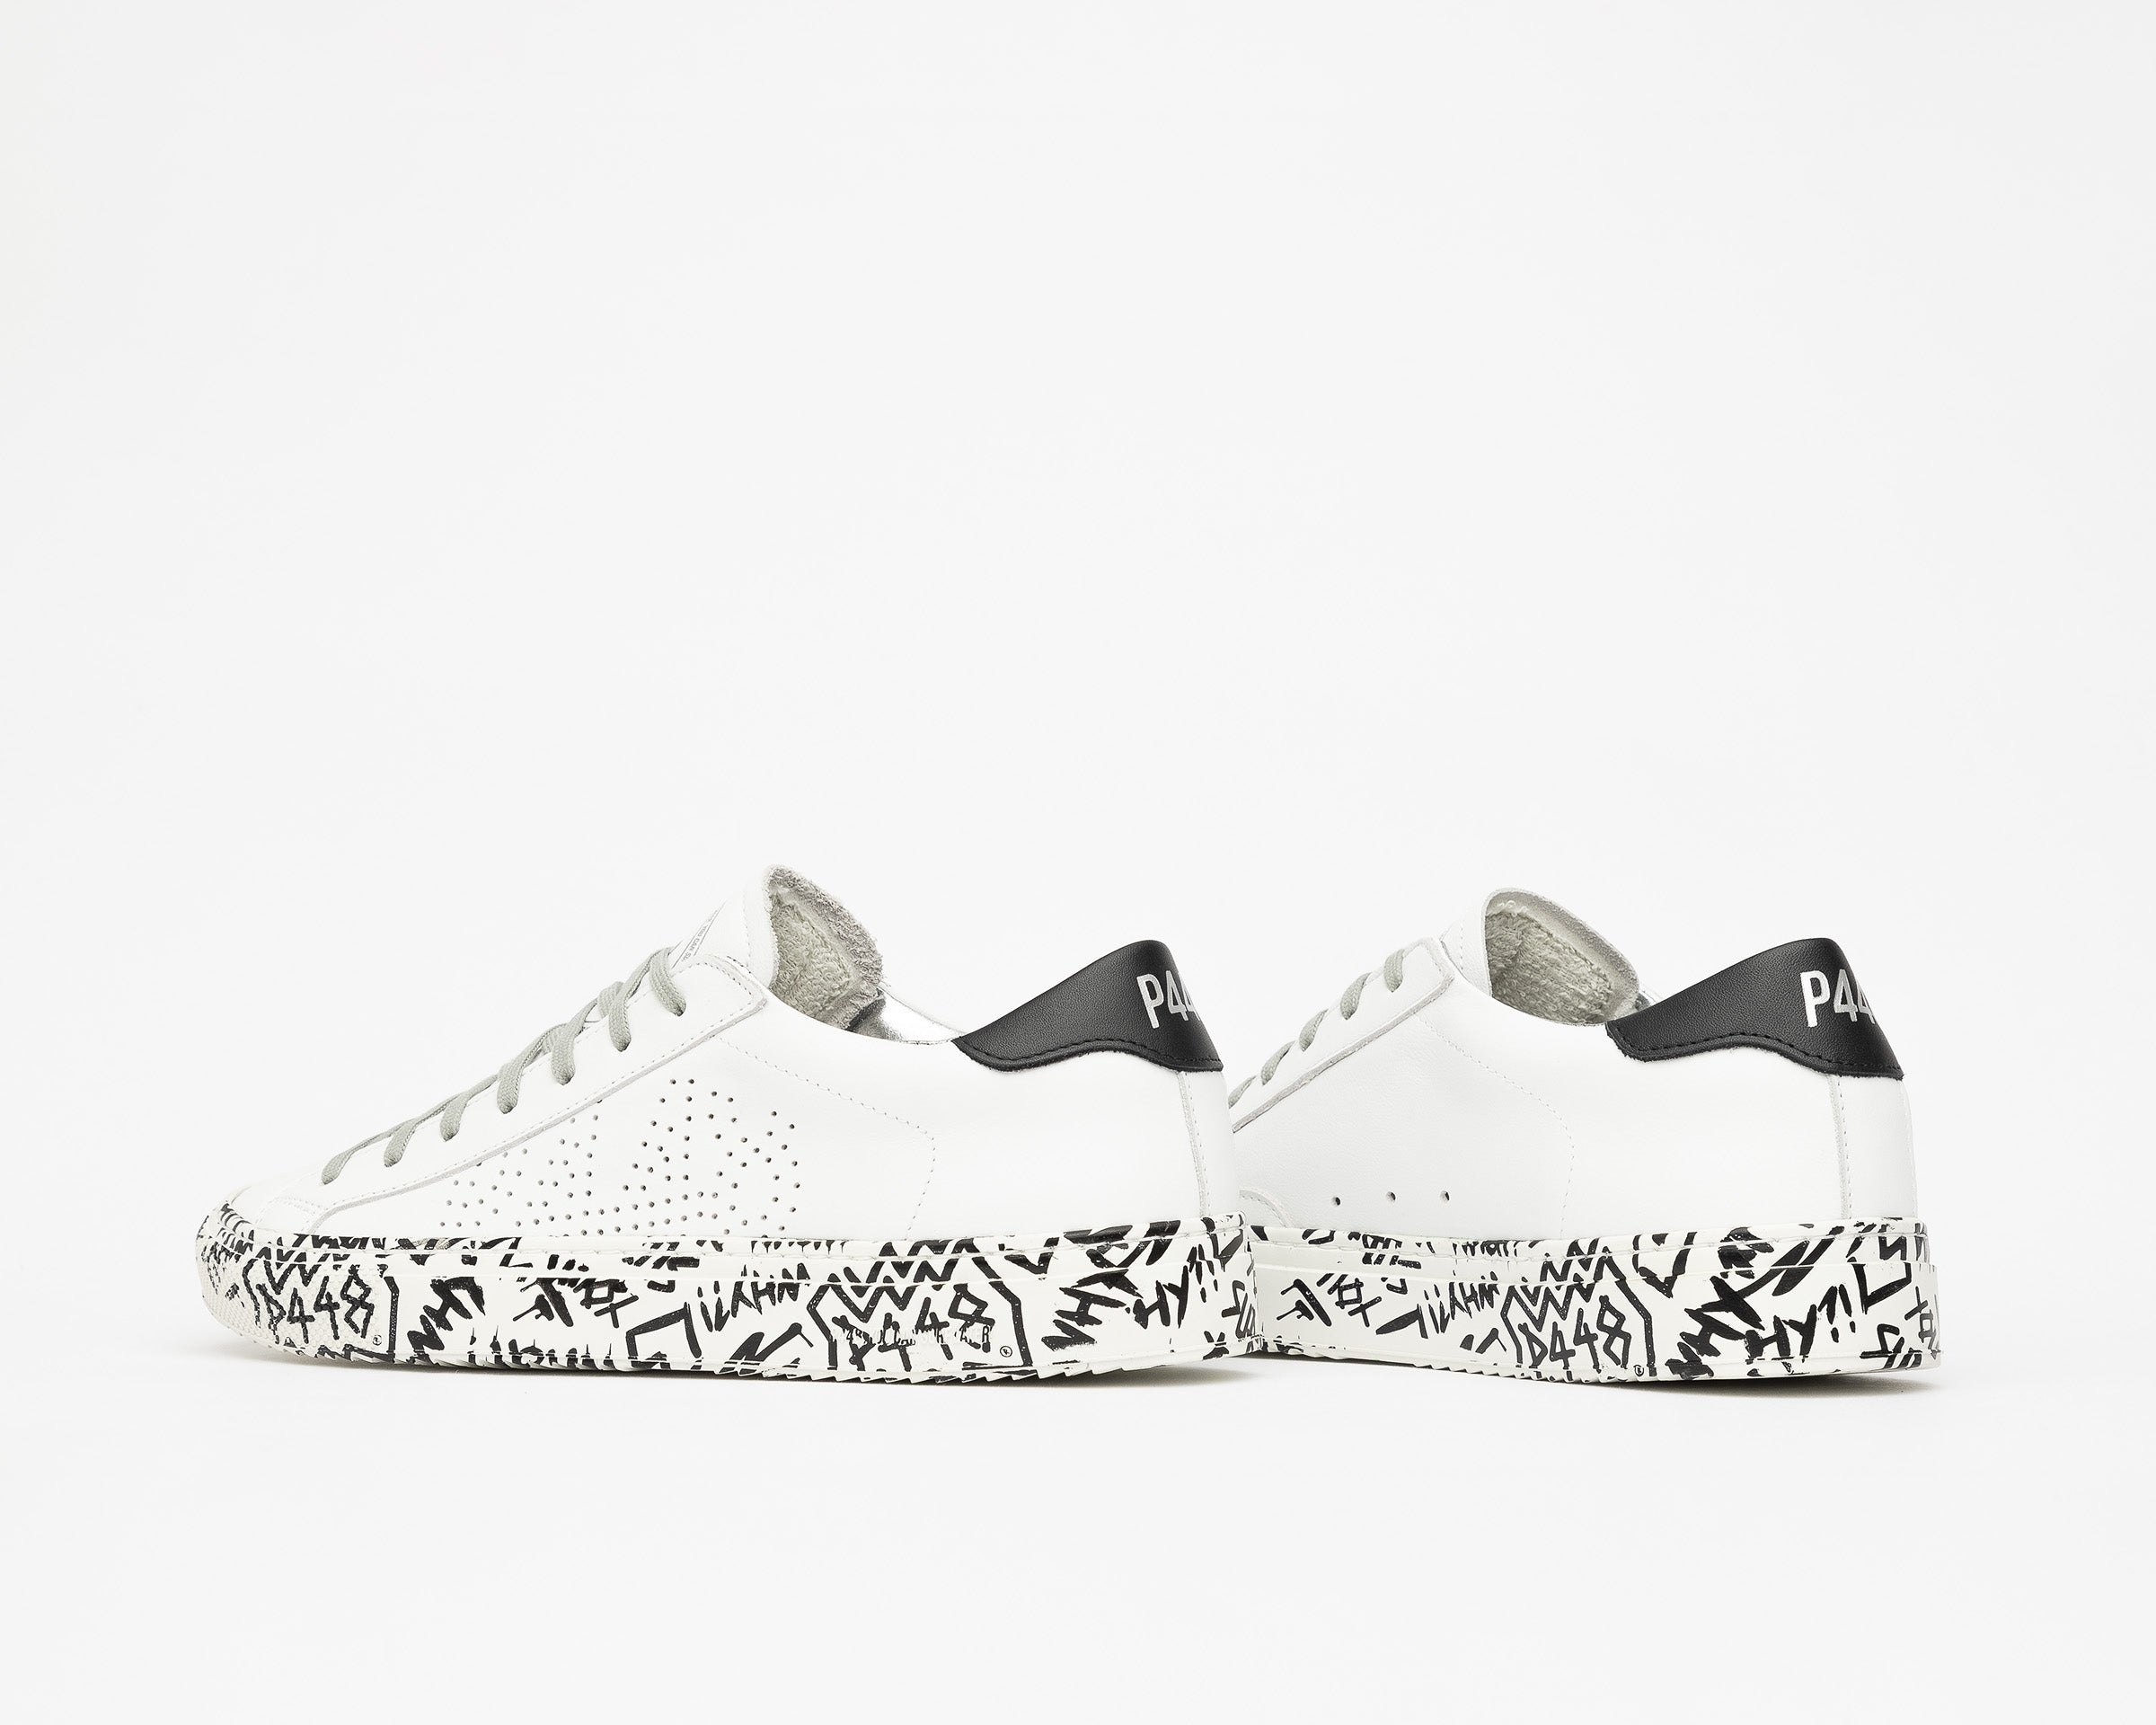 JohnP Low-Top Sneaker in White/P448 Sole - Detail 2